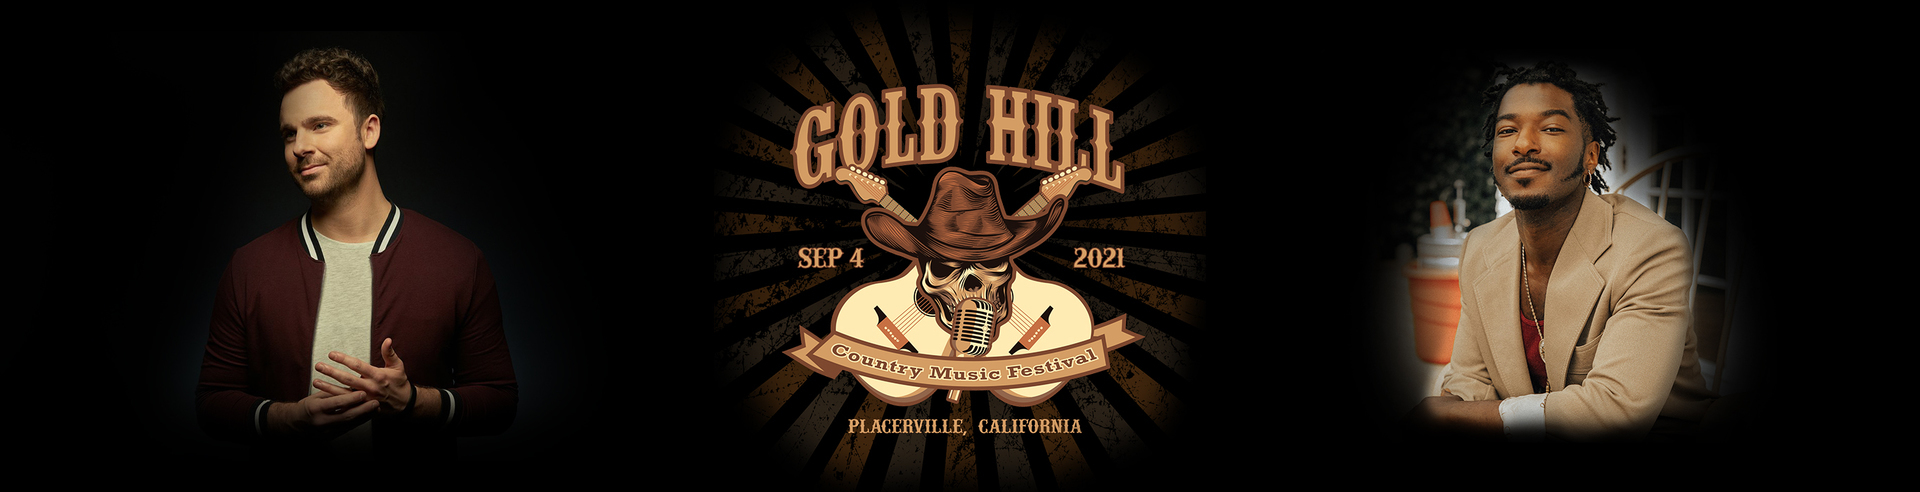 Gold Hill Country Music Festival